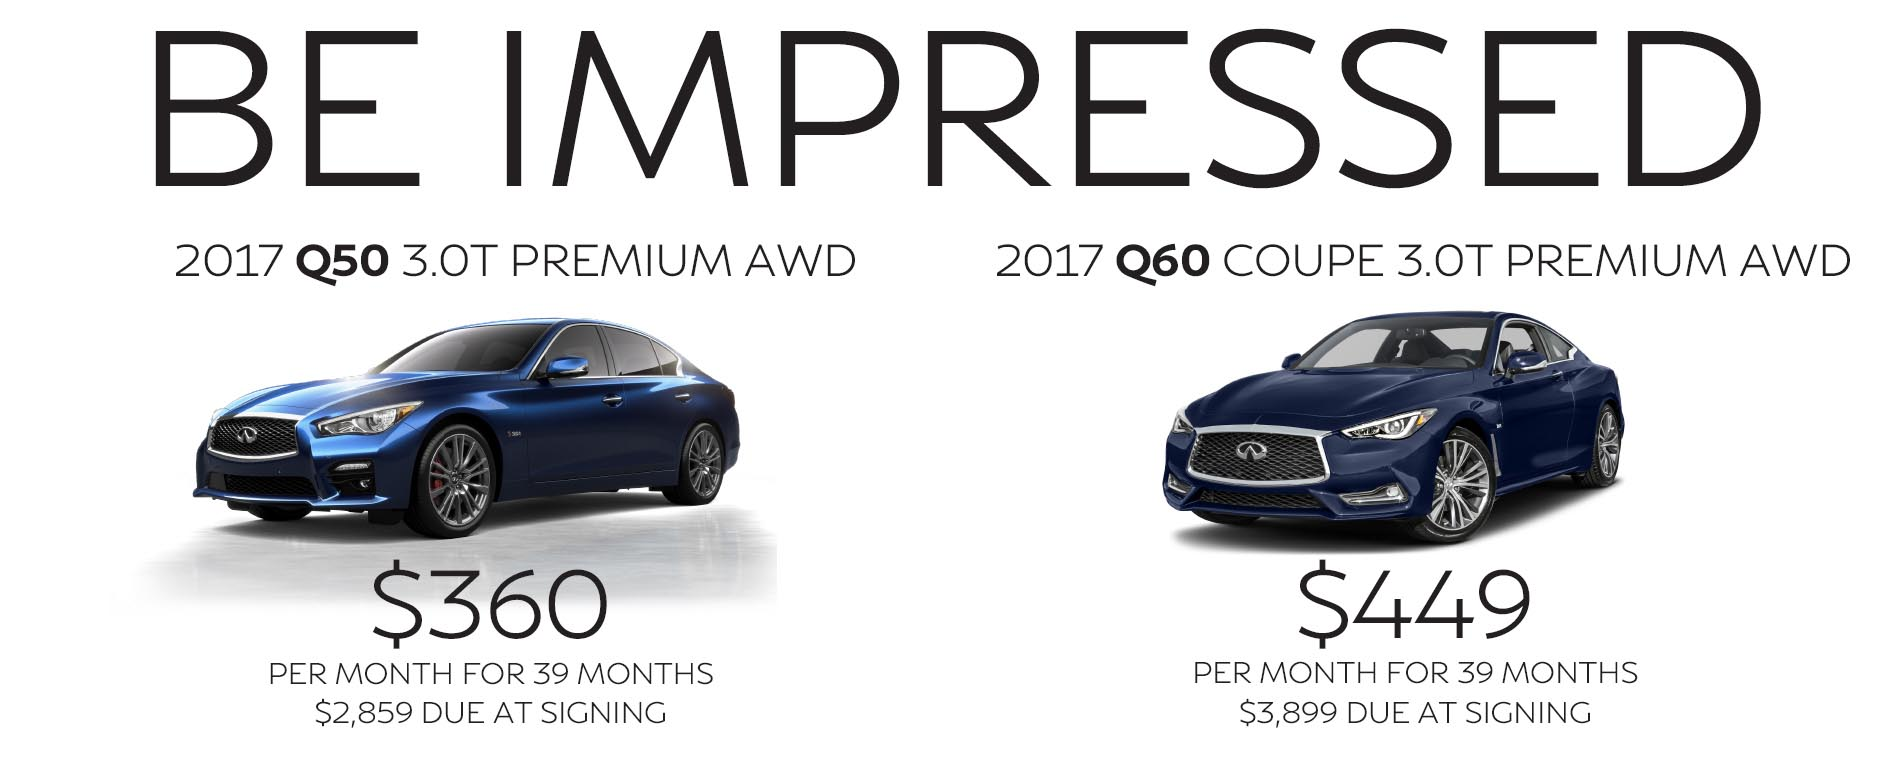 Be Impressed. Lease a 2017 Infiniti Q50 for $360 per month with $2,859 due at signing or lease a 2017 Q60 Coupe for $449 per month with $3,899 due at signing.